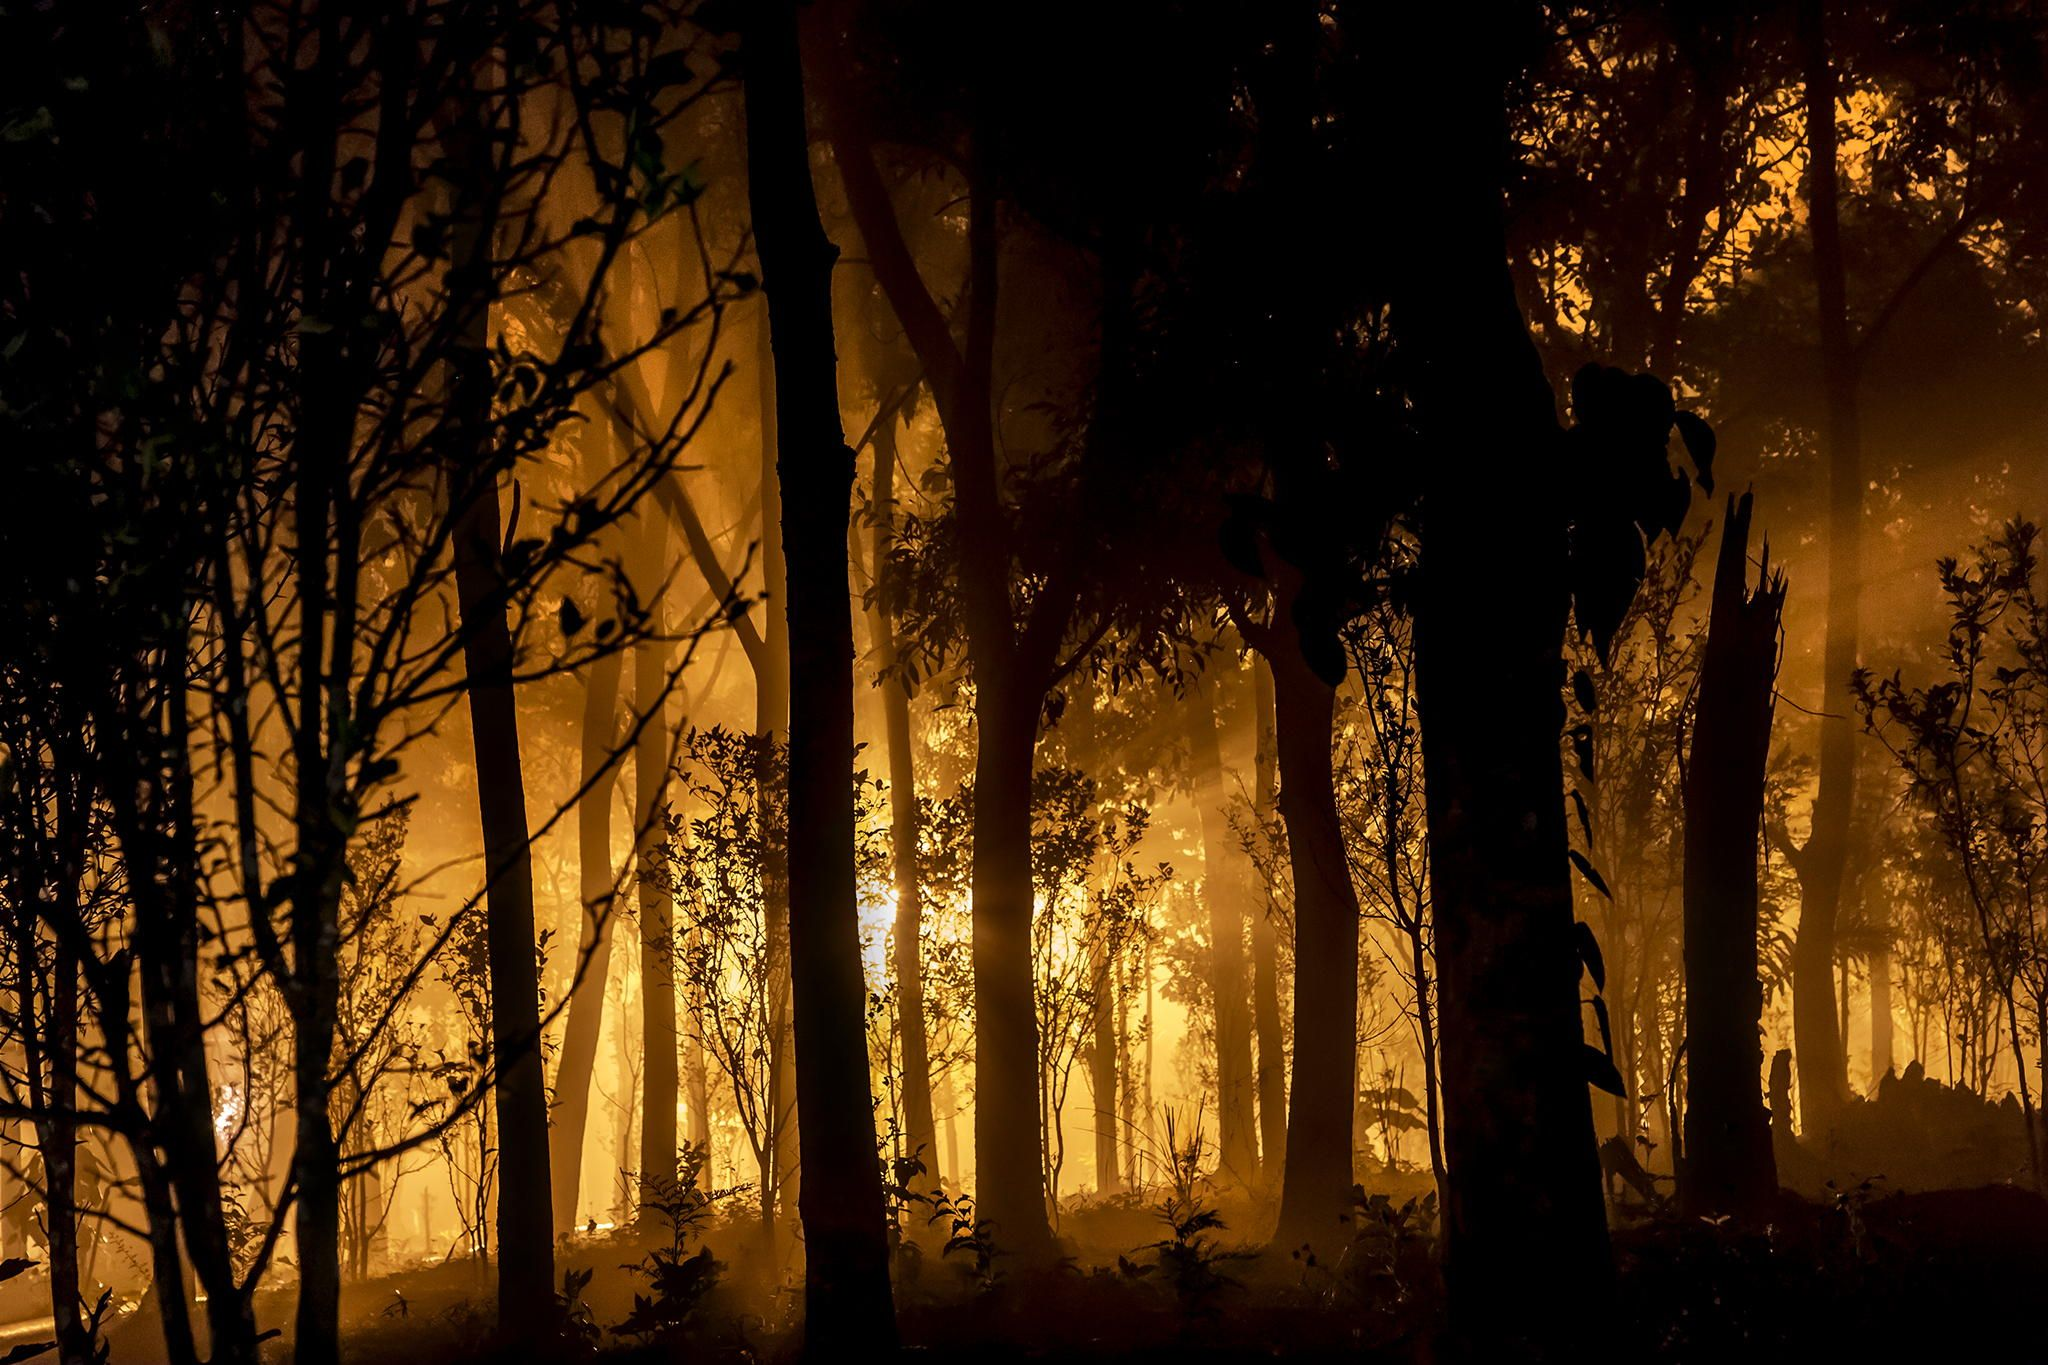 Forest Fire by Abhisek Sarda on 500px